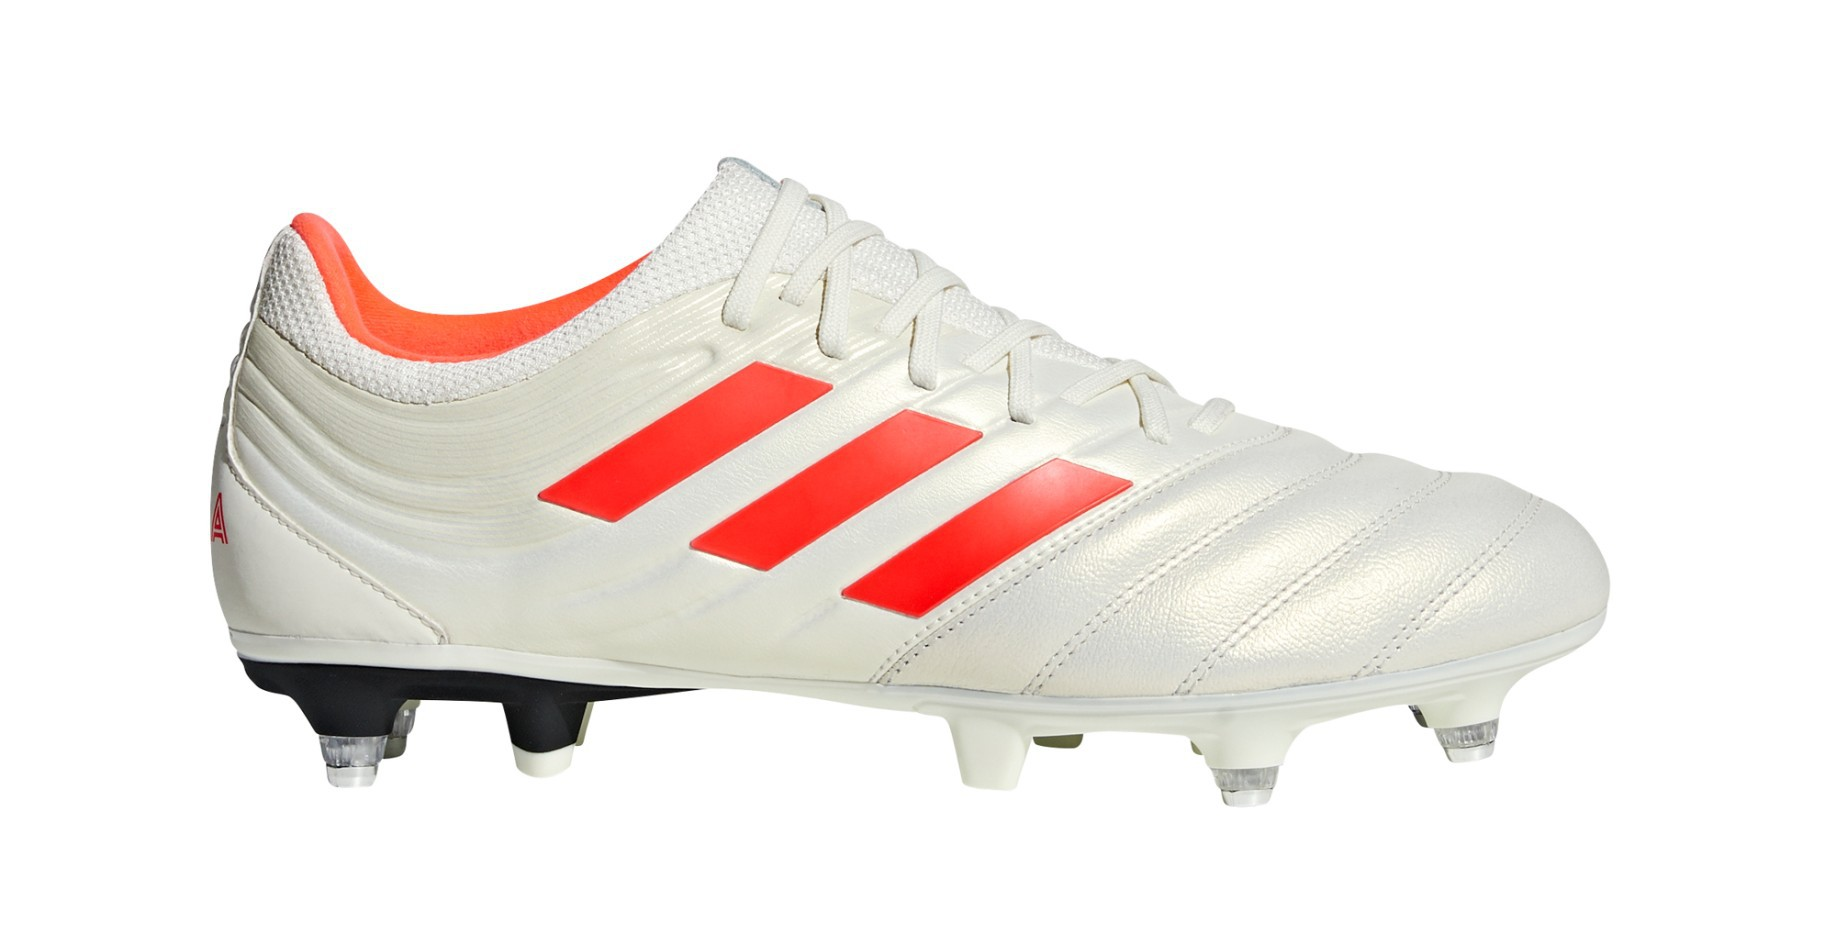 d953cc150 Football boots Adidas Copa 19.3 SG Initiator Pack colore White Red - Adidas  - SportIT.com